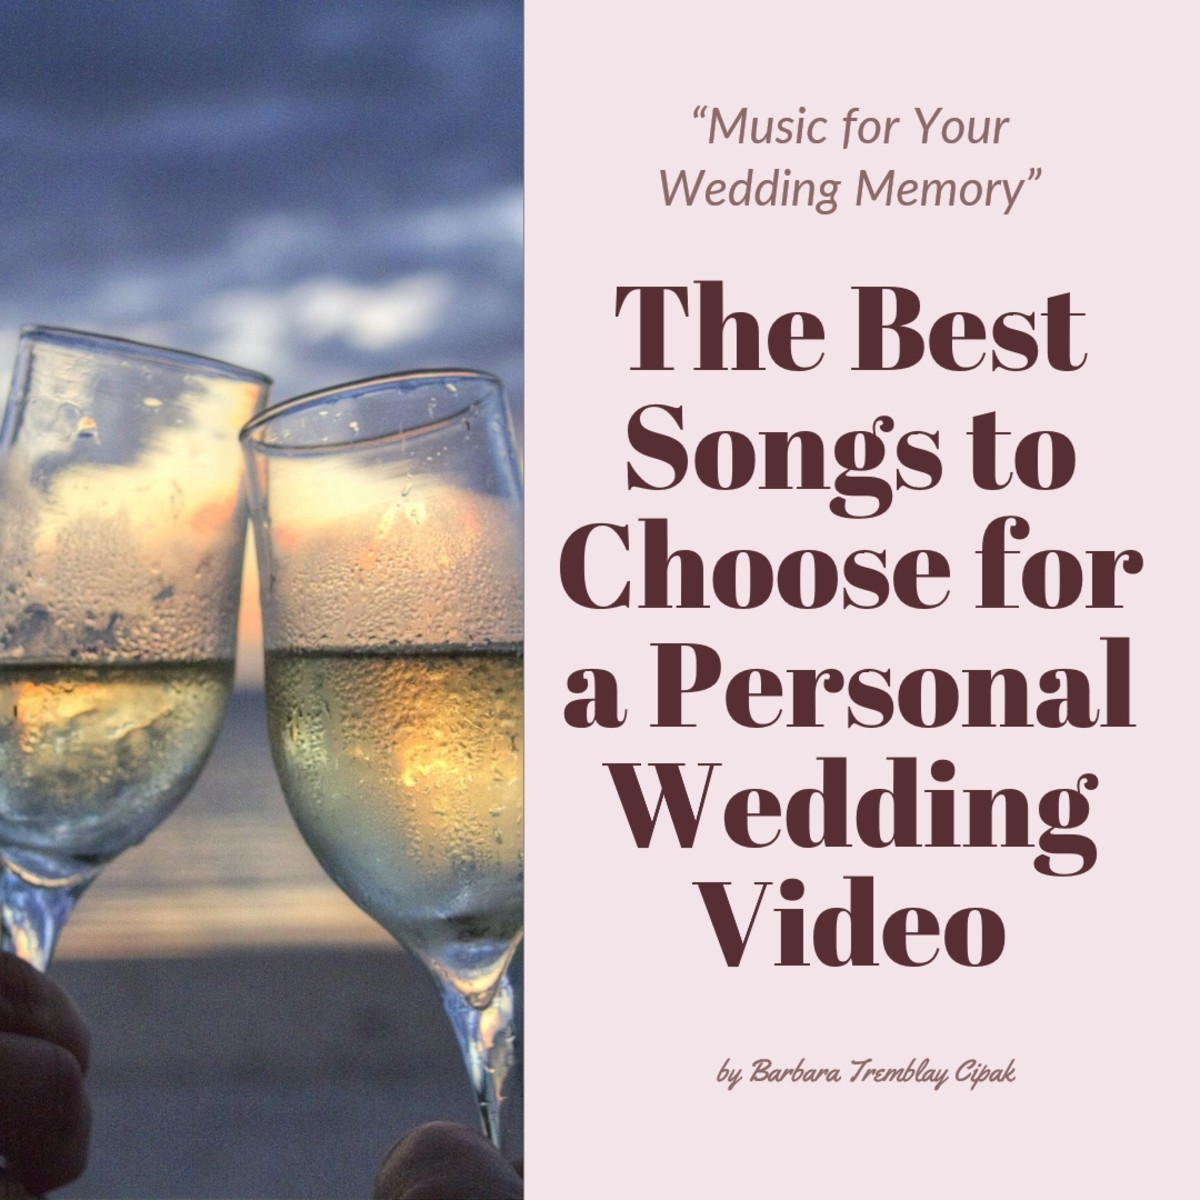 The best songs to choose for a personal wedding video